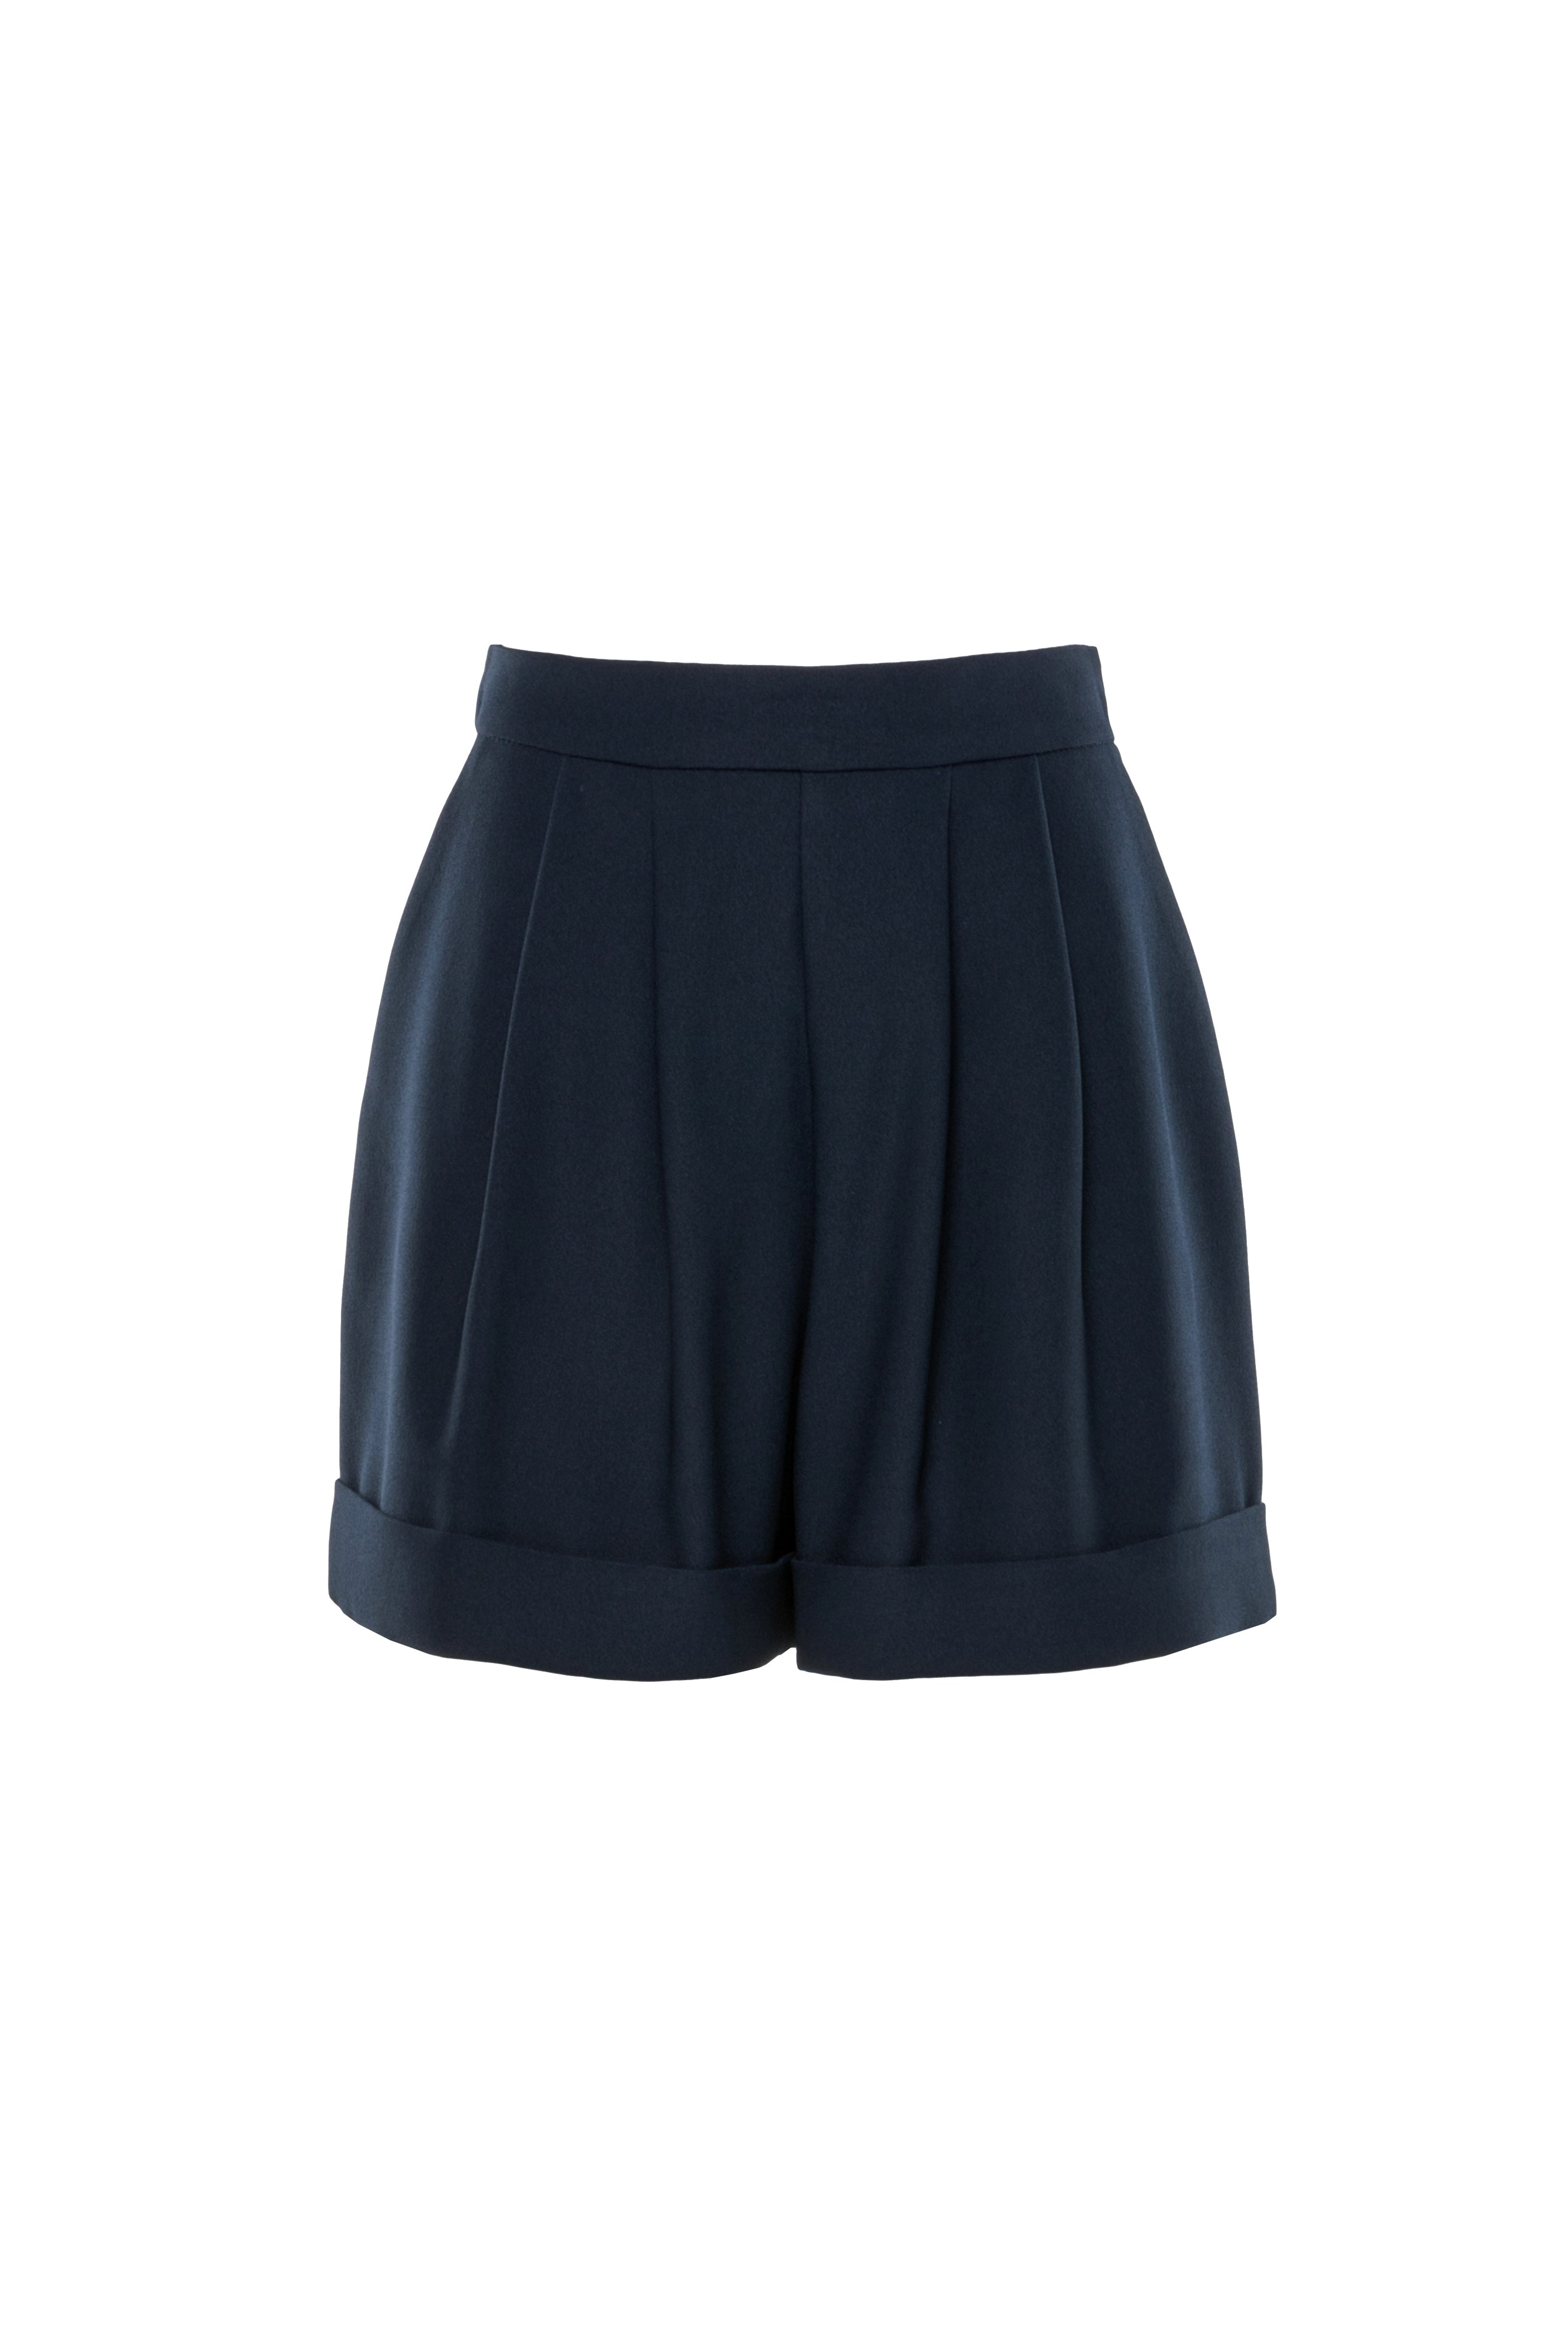 The Navy Bianca Shorts